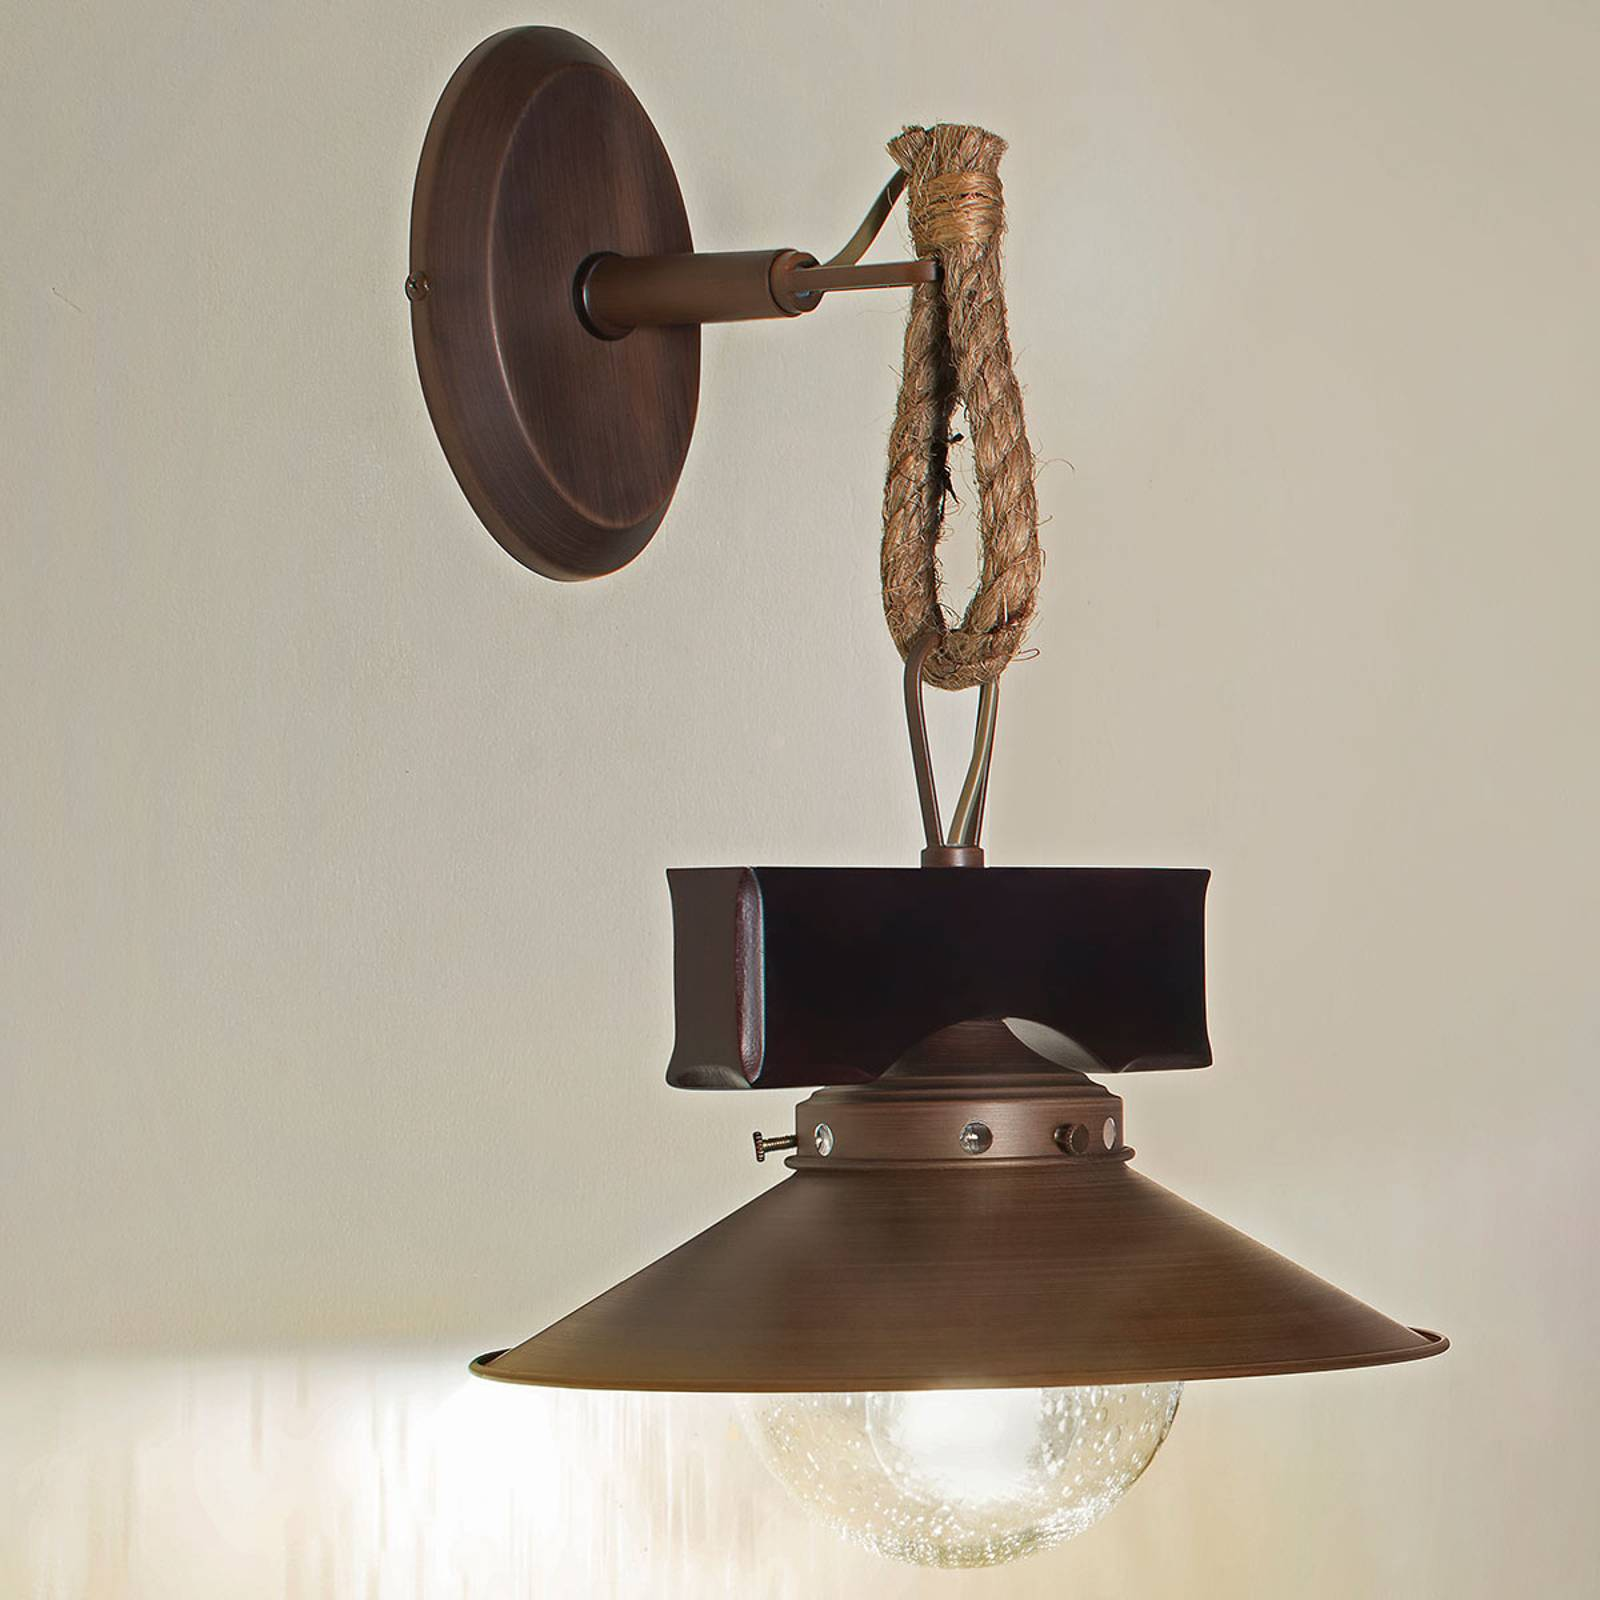 Rustic Nudos wall light with a mix of materials from FARO BARCELONA